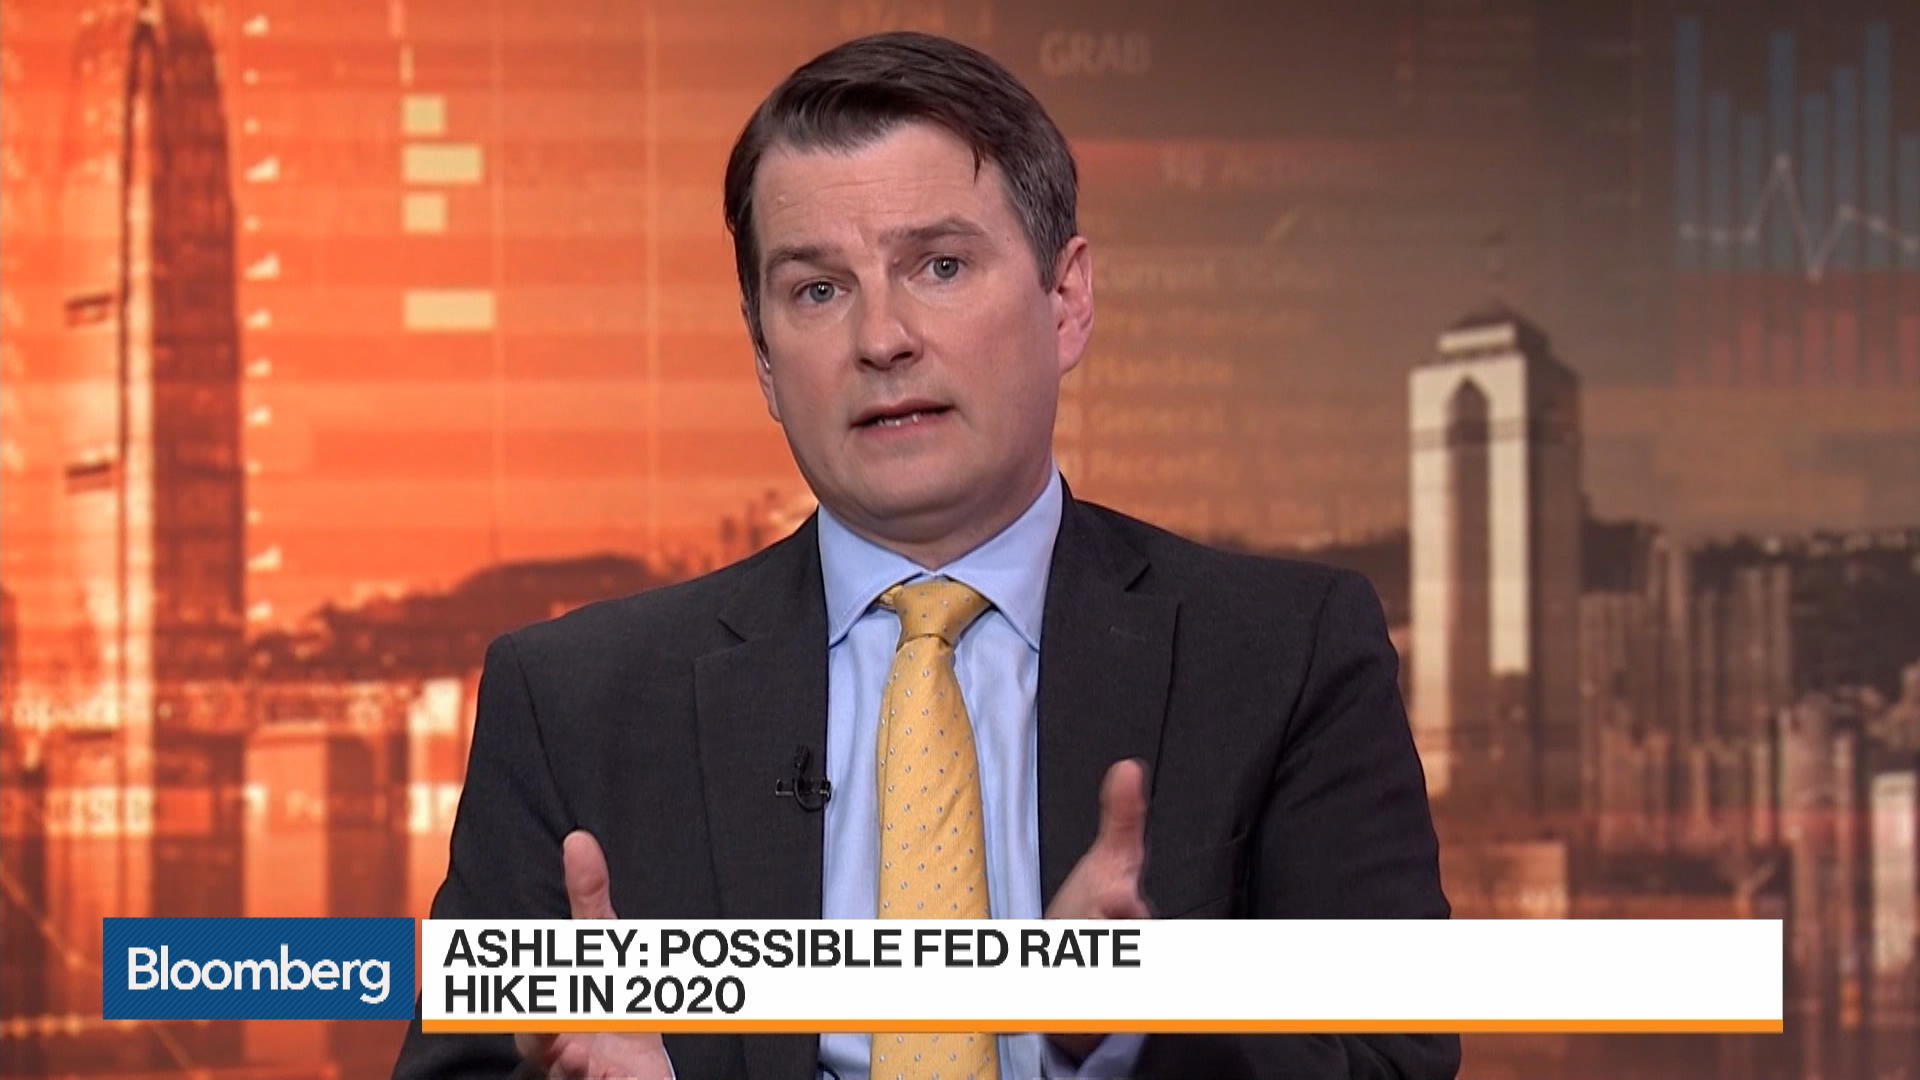 Expect More Volatile Markets Between Now and G-20, Says Goldman Sachs's Ashley